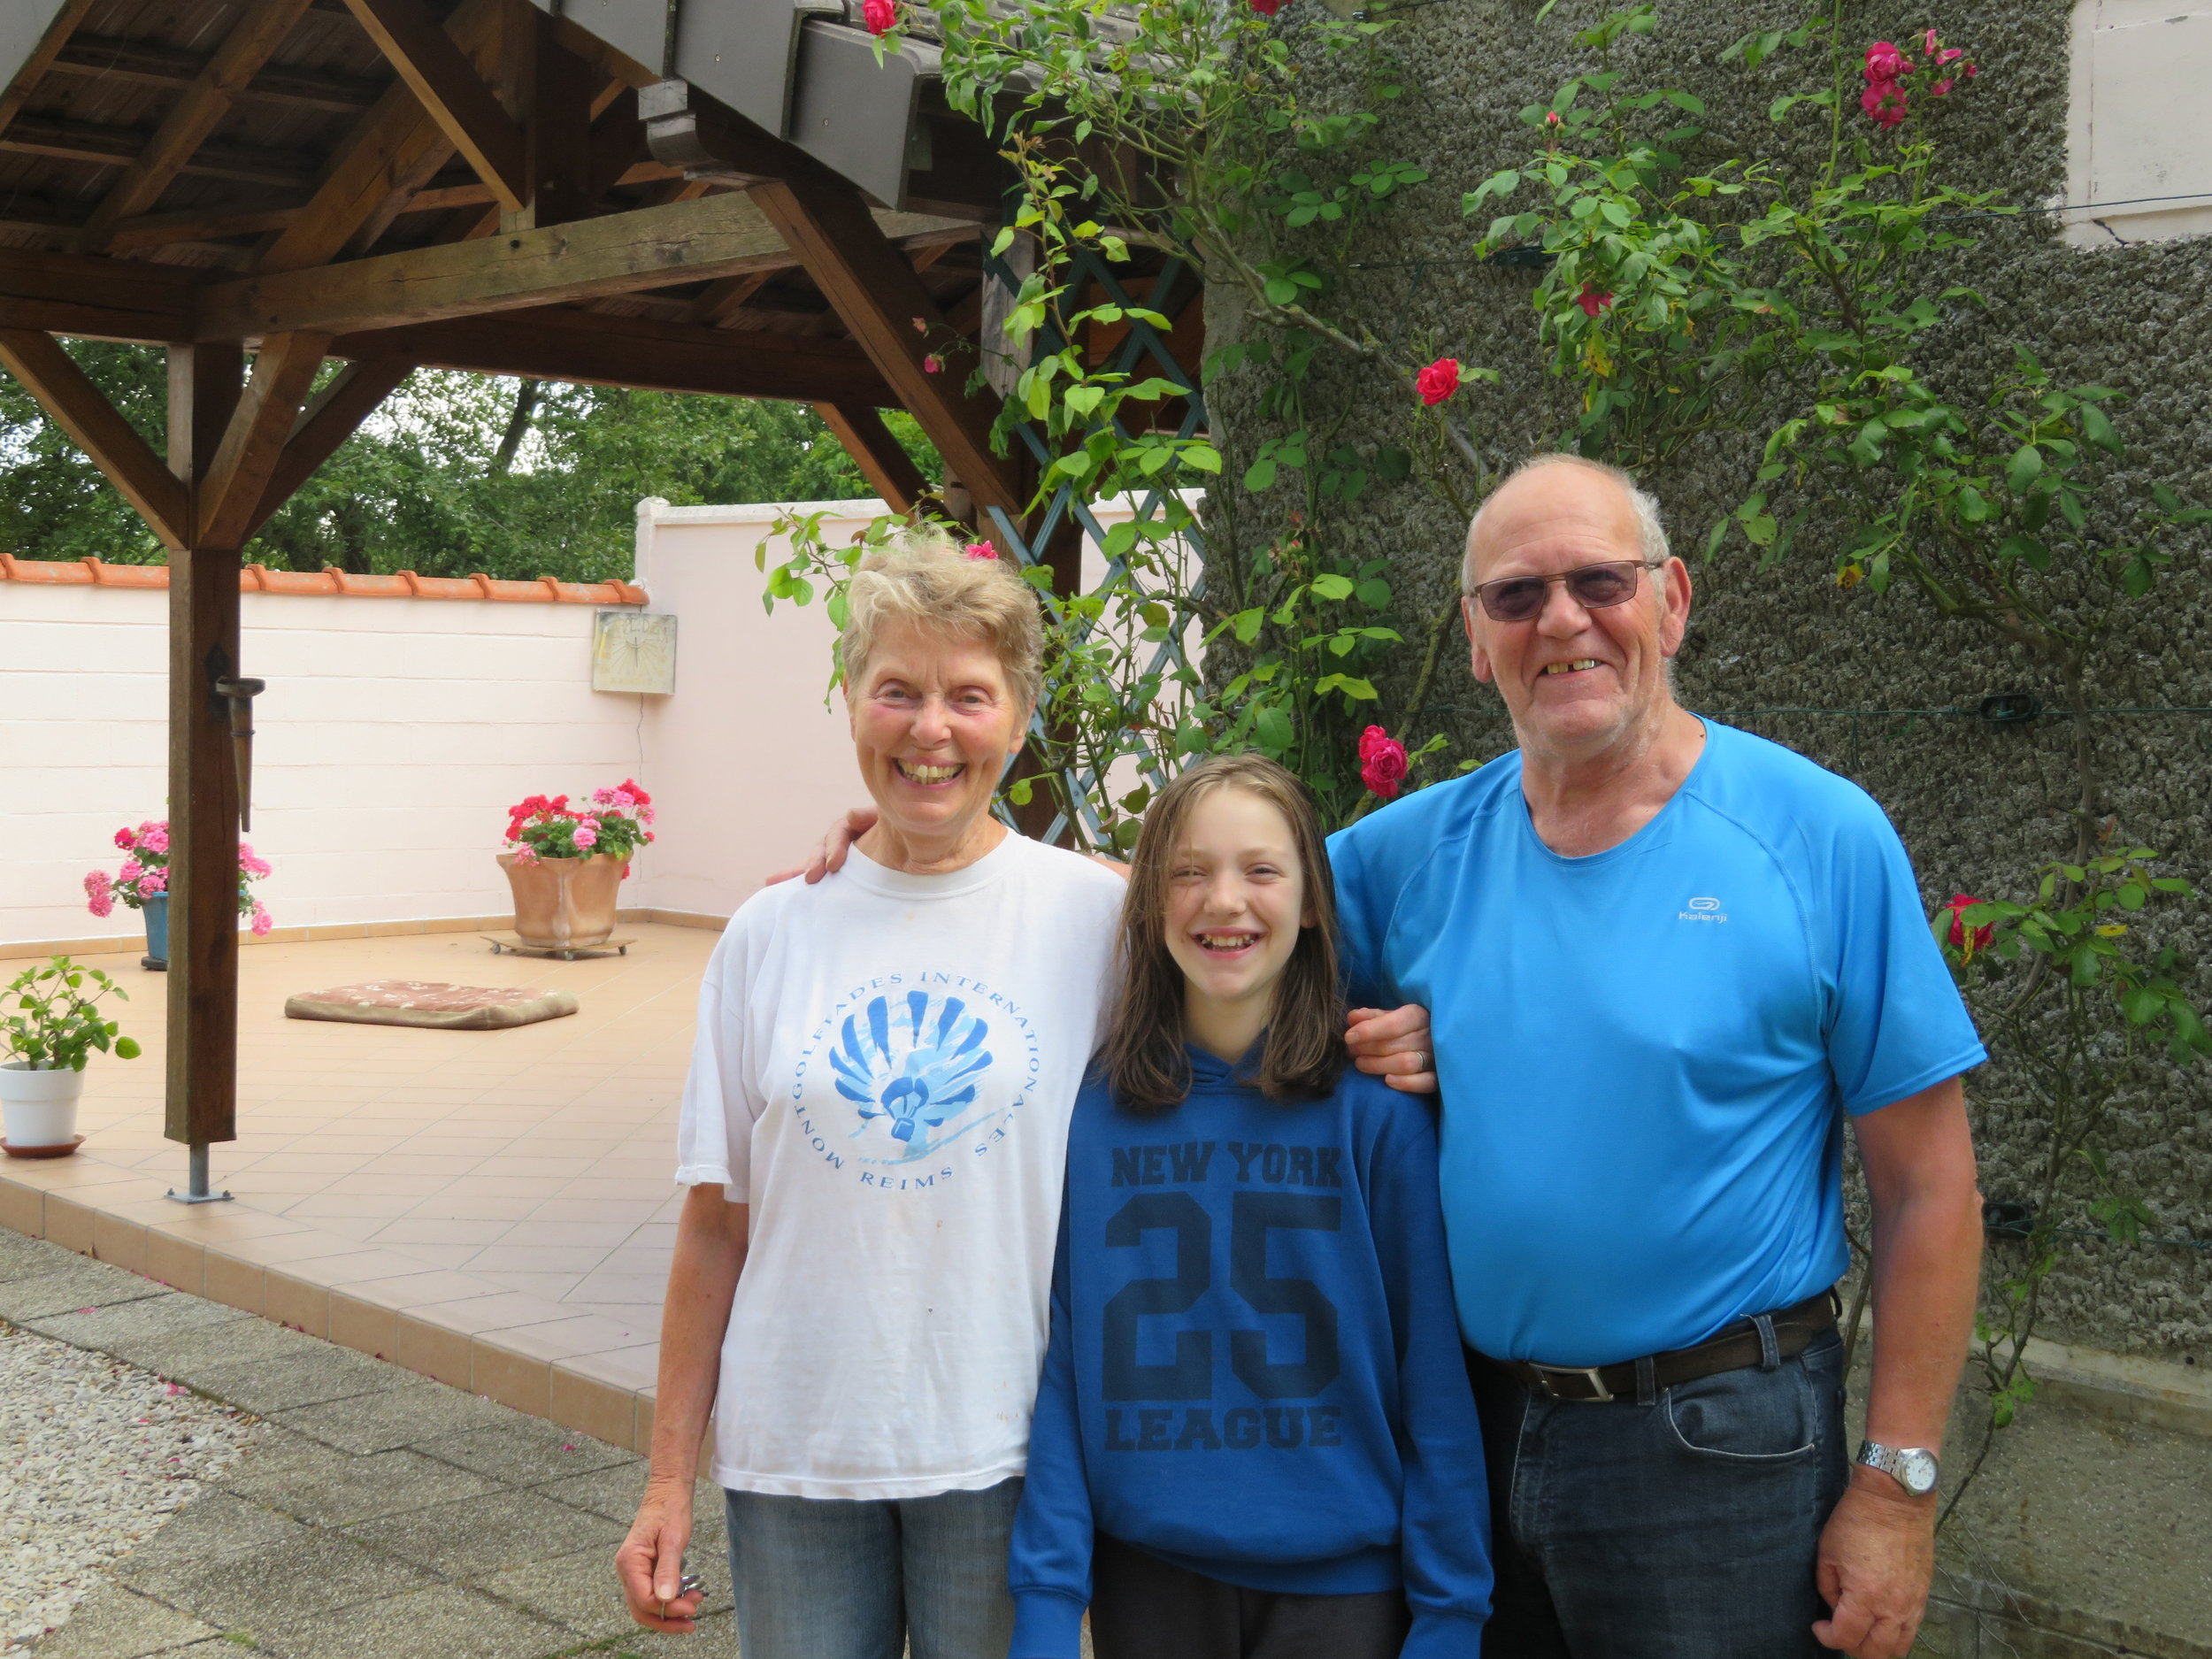 Helene & Alain and their granddaughter, Anaelle … our trail angels